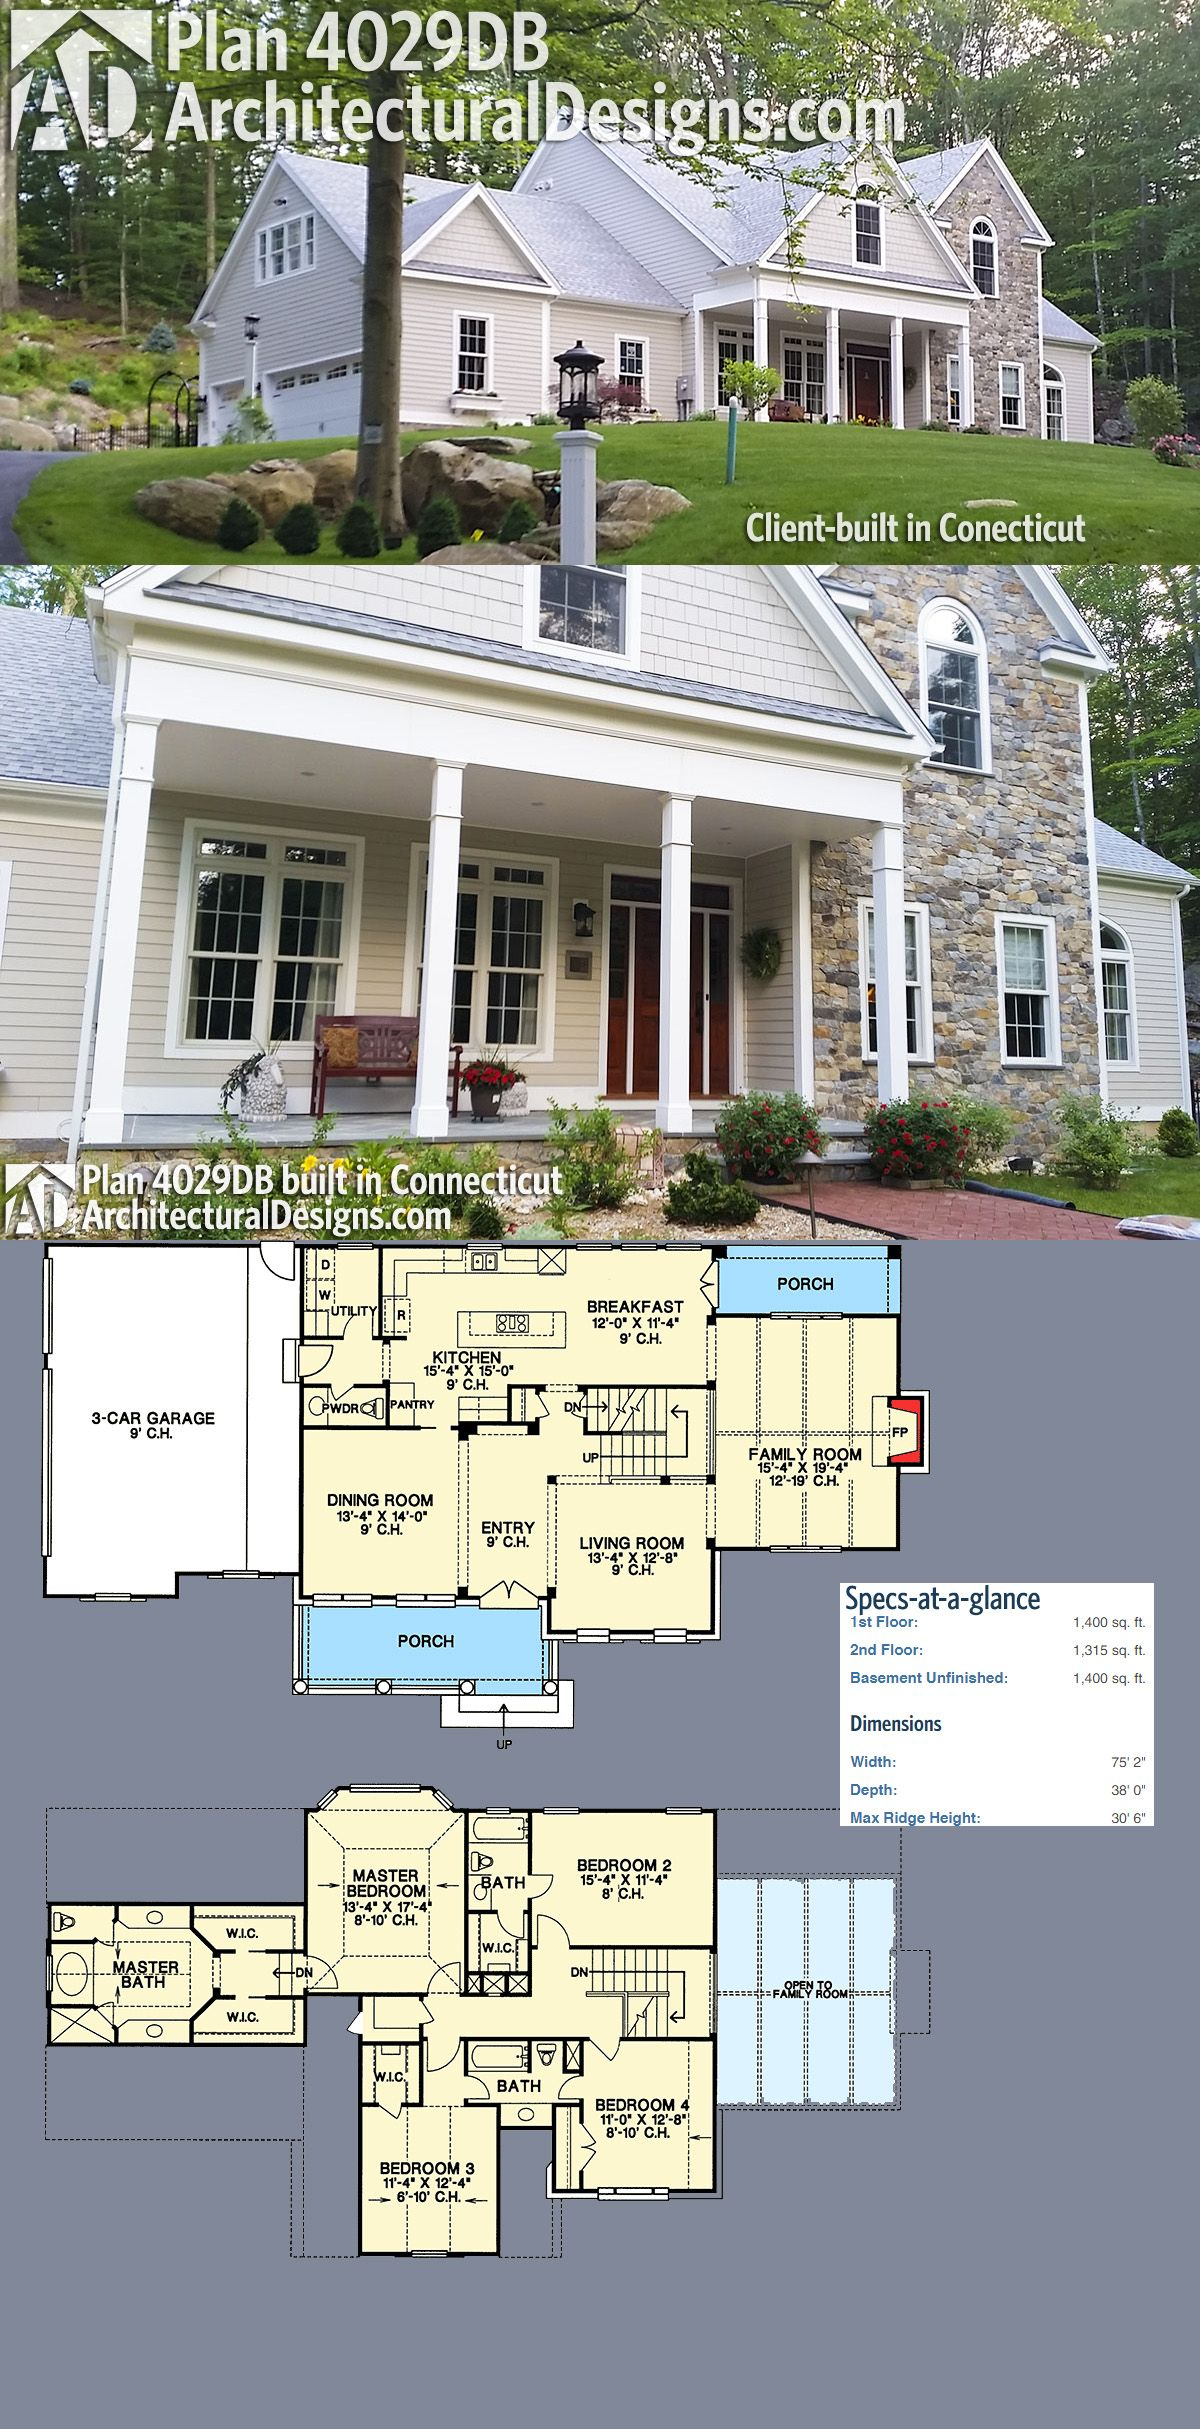 Plan 4029db Traditional Home Plan With Magnificent Vaulted Family Room Traditional House Plans Architectural Design House Plans House Plans